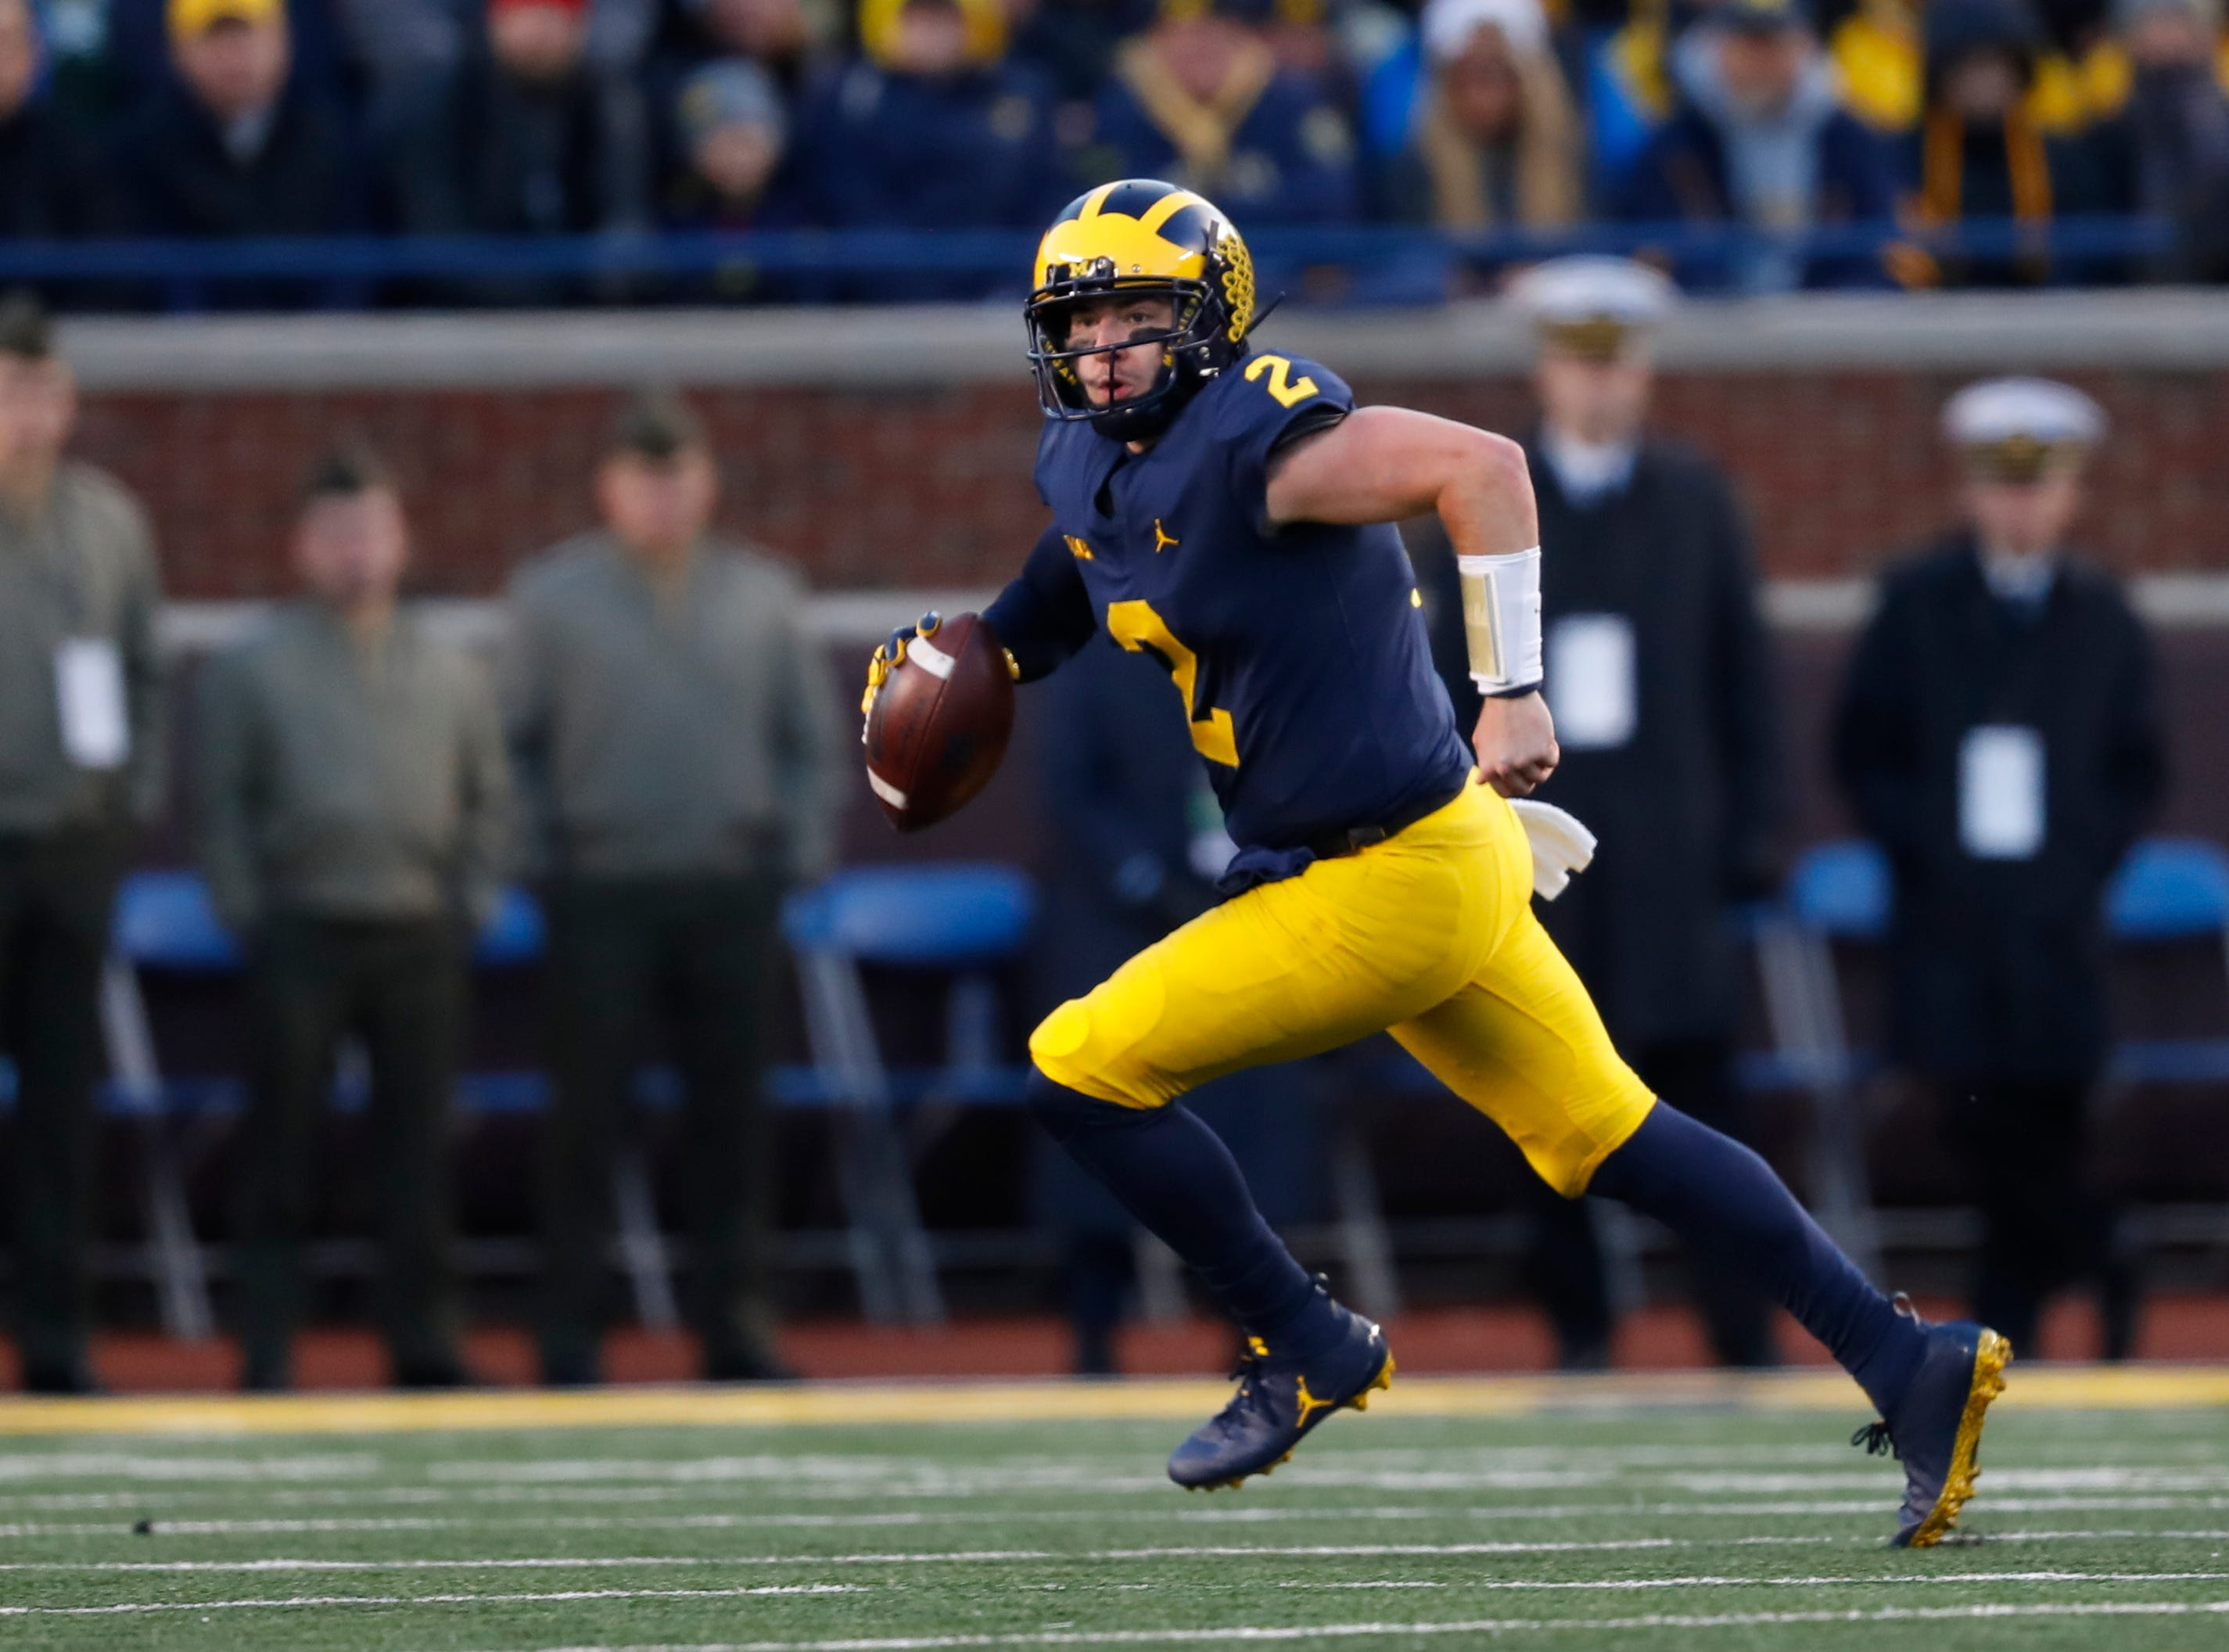 Michigan quarterback Shea Patterson runs against the Penn State in the second half of an NCAA college football game in Ann Arbor, Mich., Saturday, Nov. 3, 2018. (AP Photo/Paul Sancya)